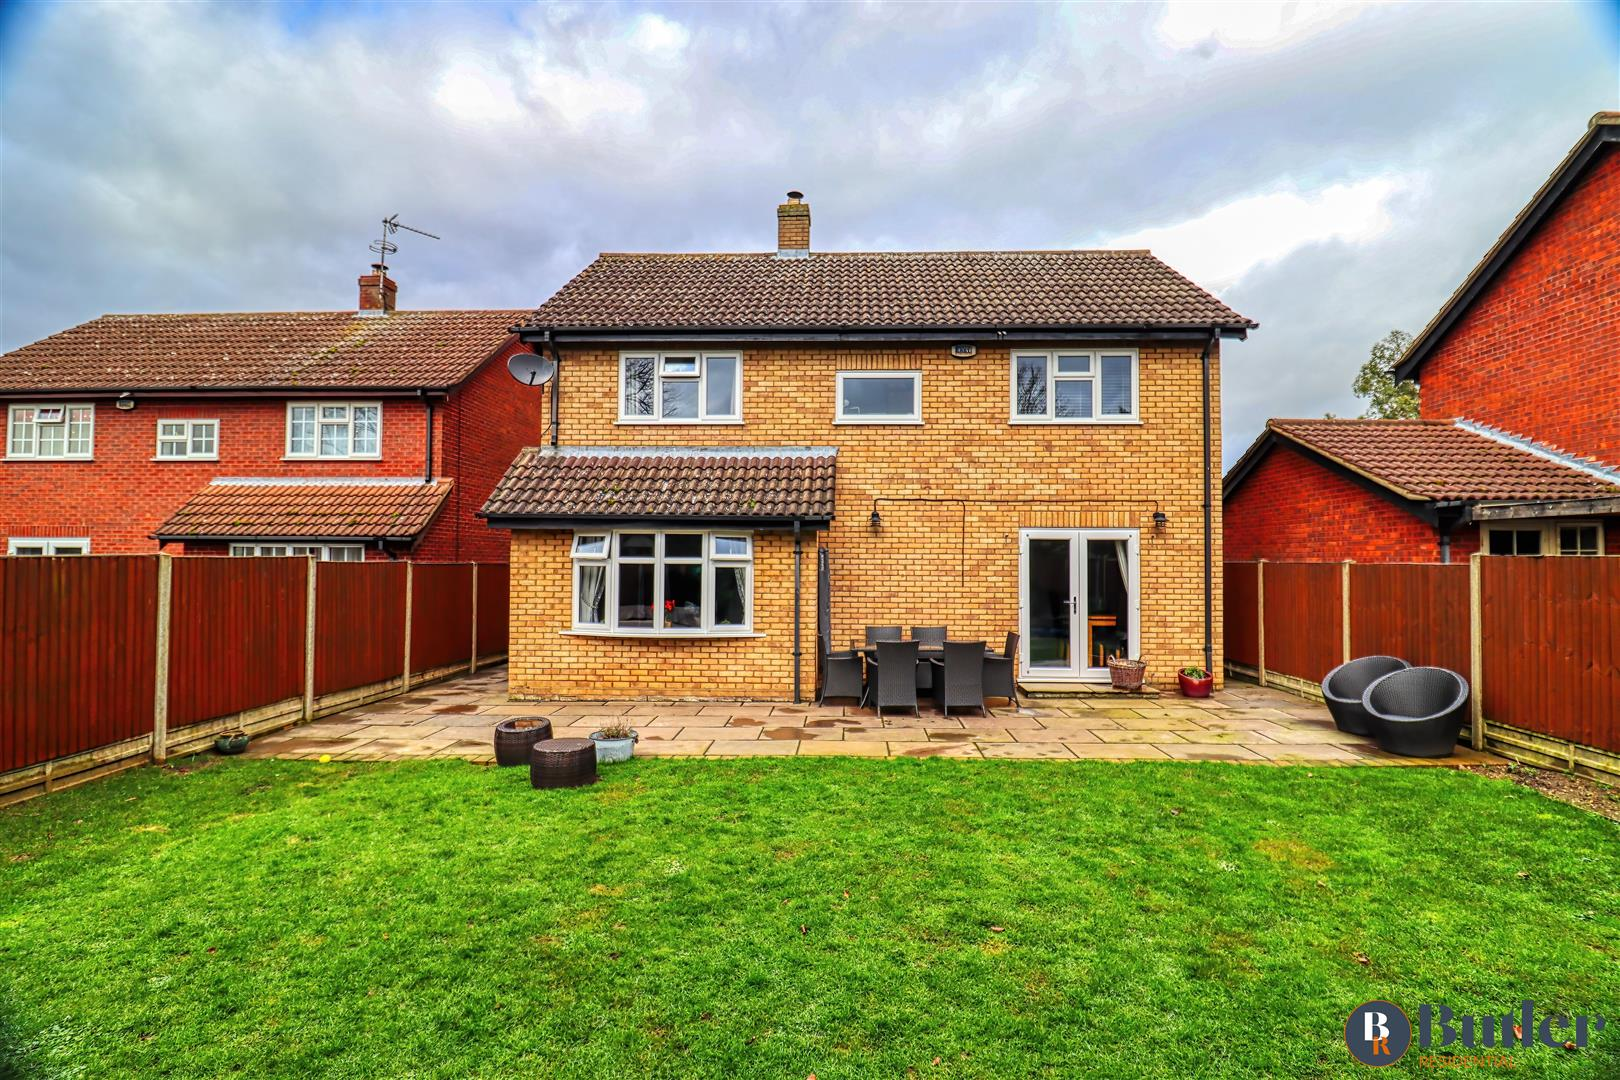 4 bed detached house for sale in Burrows Close, Shefford, SG17